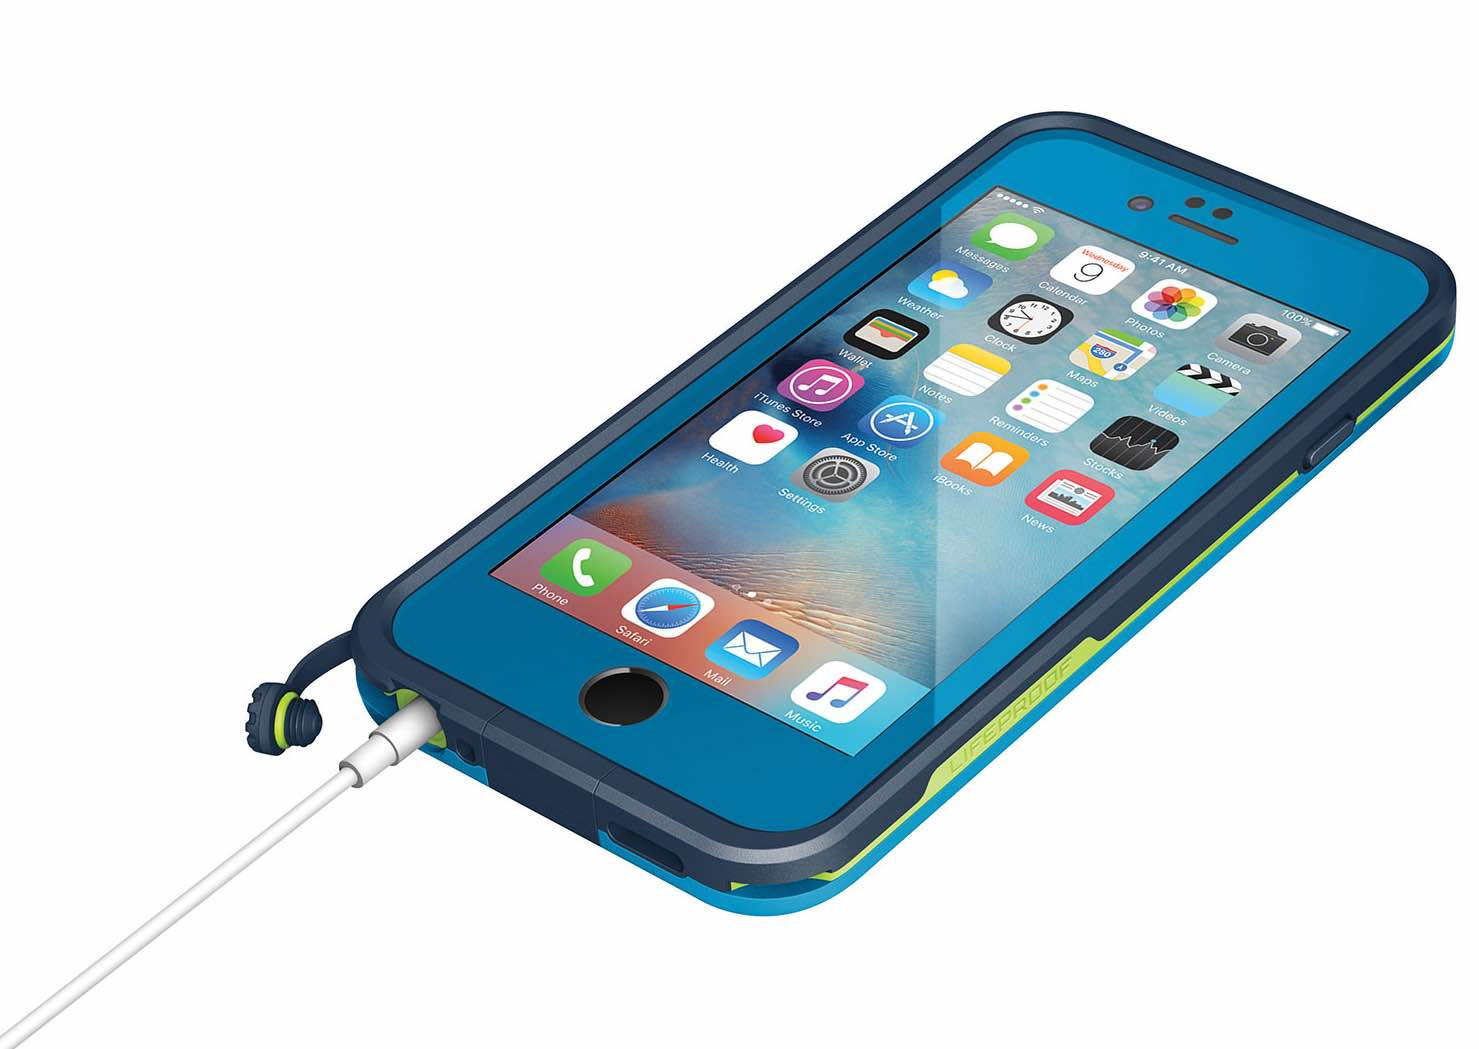 Best place to buy phone accessories